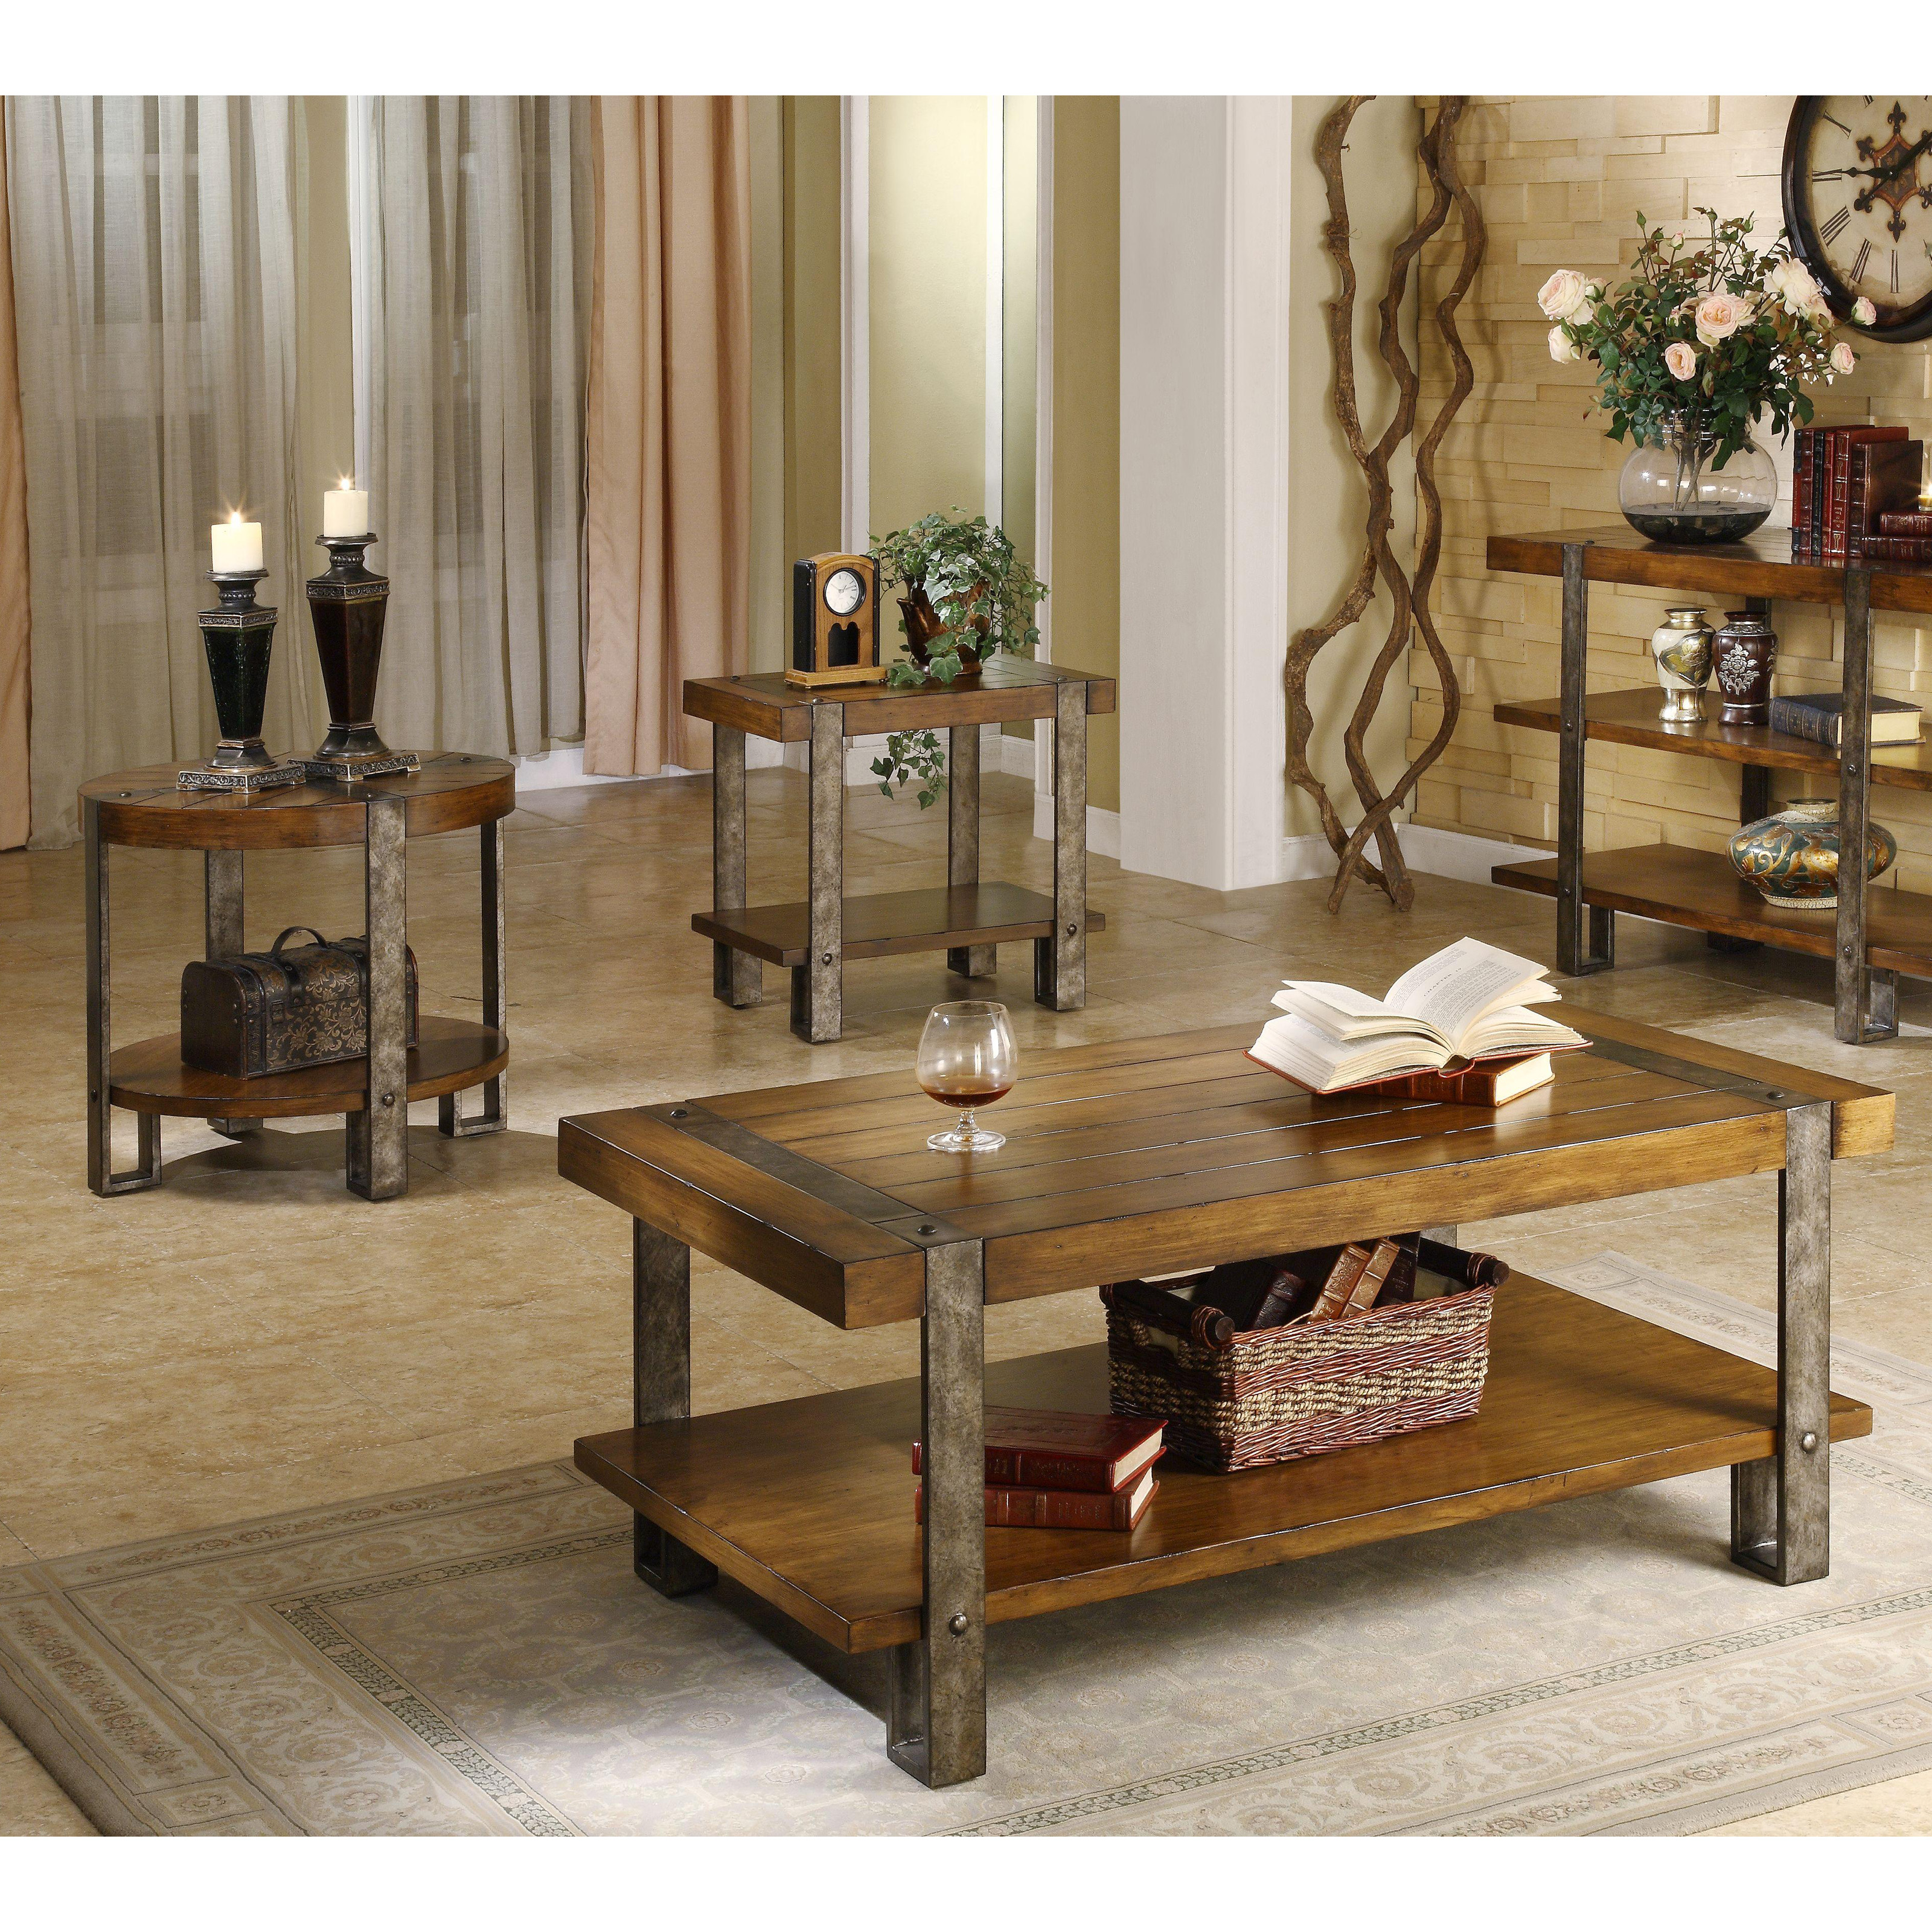 Tables Sets: Riverside Sierra Rectangular 3 Piece Coffee Table Set